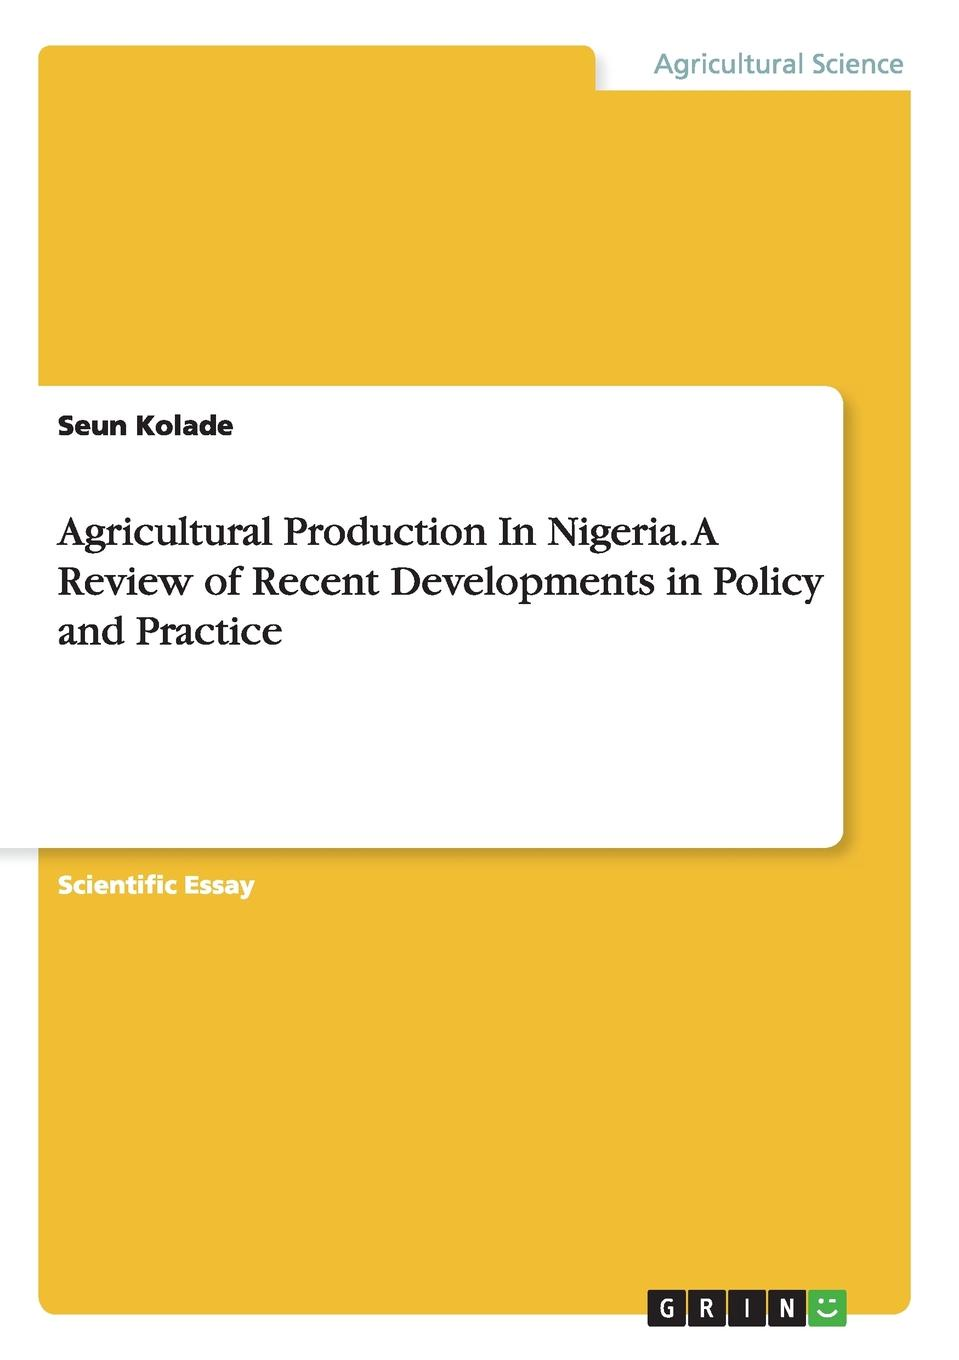 Seun Kolade Agricultural Production In Nigeria. A Review of Recent Developments in Policy and Practice ernest udalla public policy in nigeria s fourth republic 1999 2010